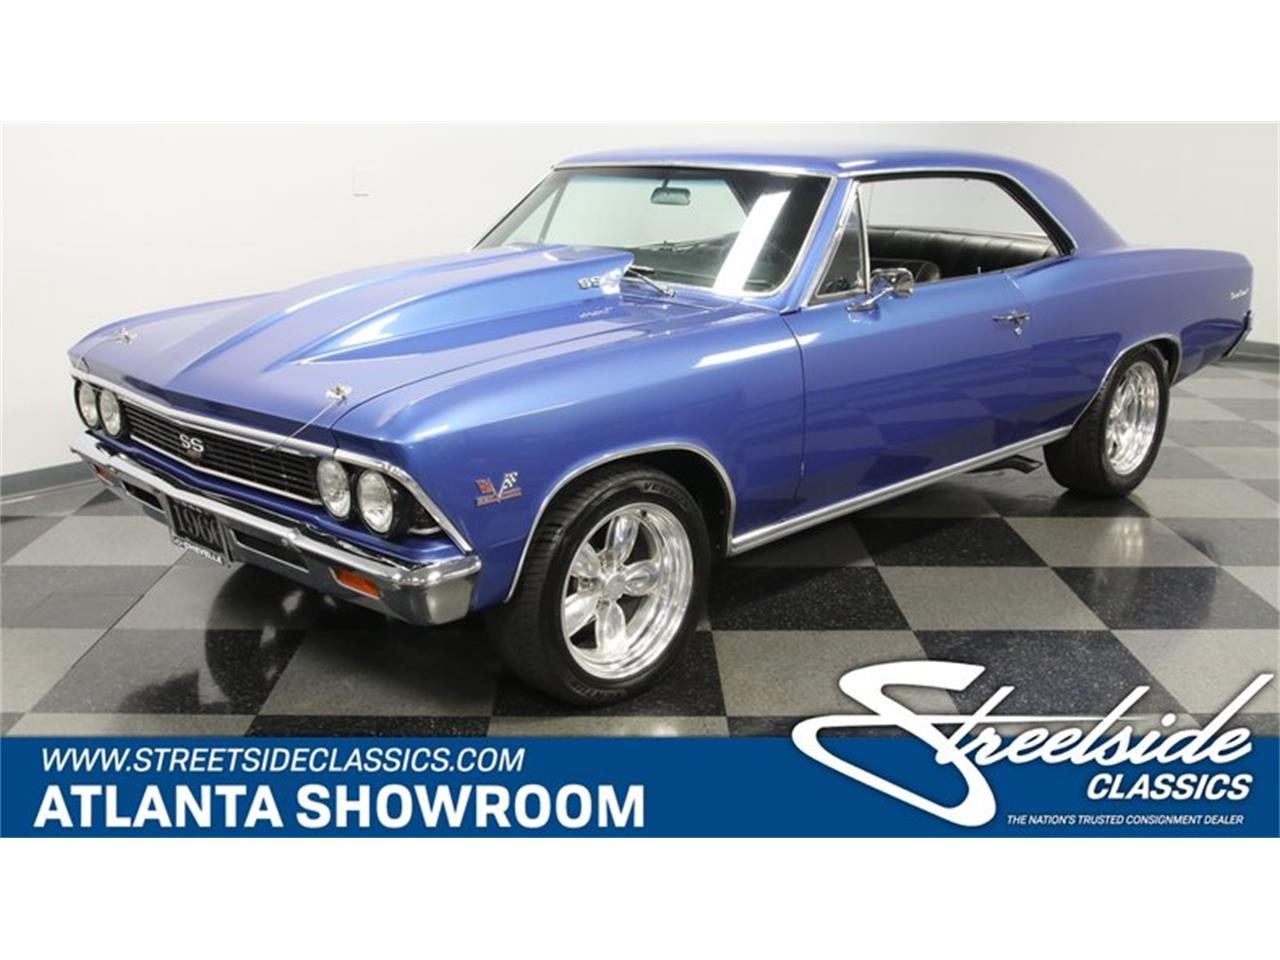 For Sale: 1966 Chevrolet Chevelle in Lithia Springs, Georgia